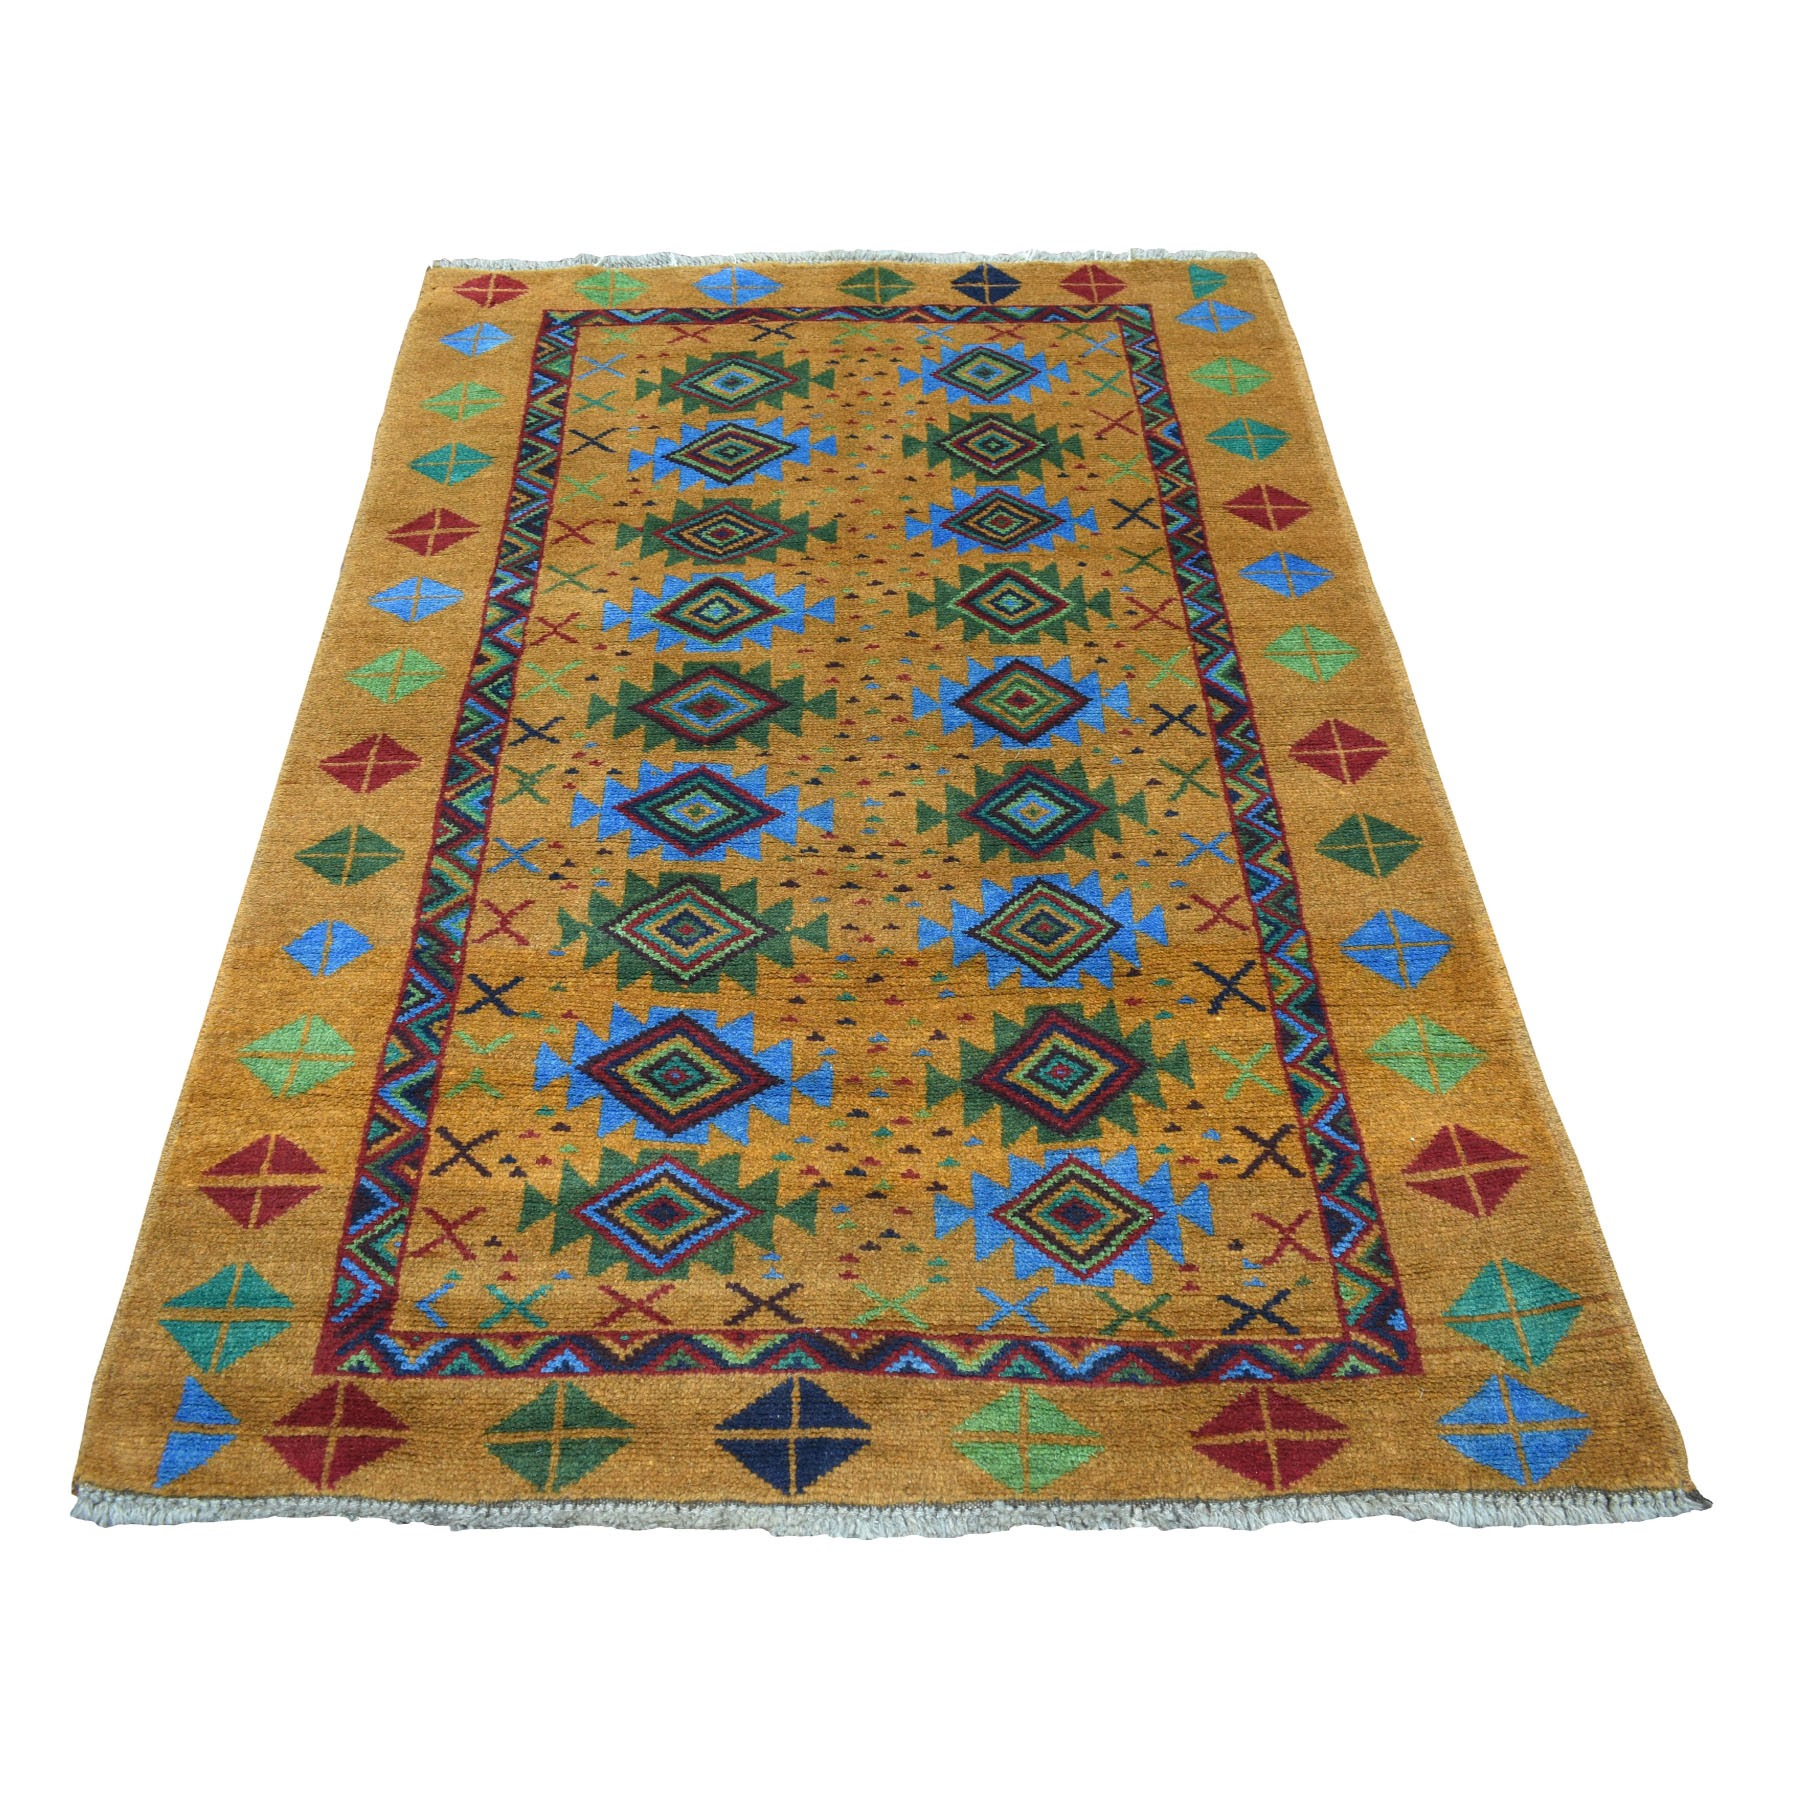 "4'x6'1"" Natural Dyes Colorful Afghan Baluch Geometric Design Hand Knotted Pure Wool Oriental Rug"